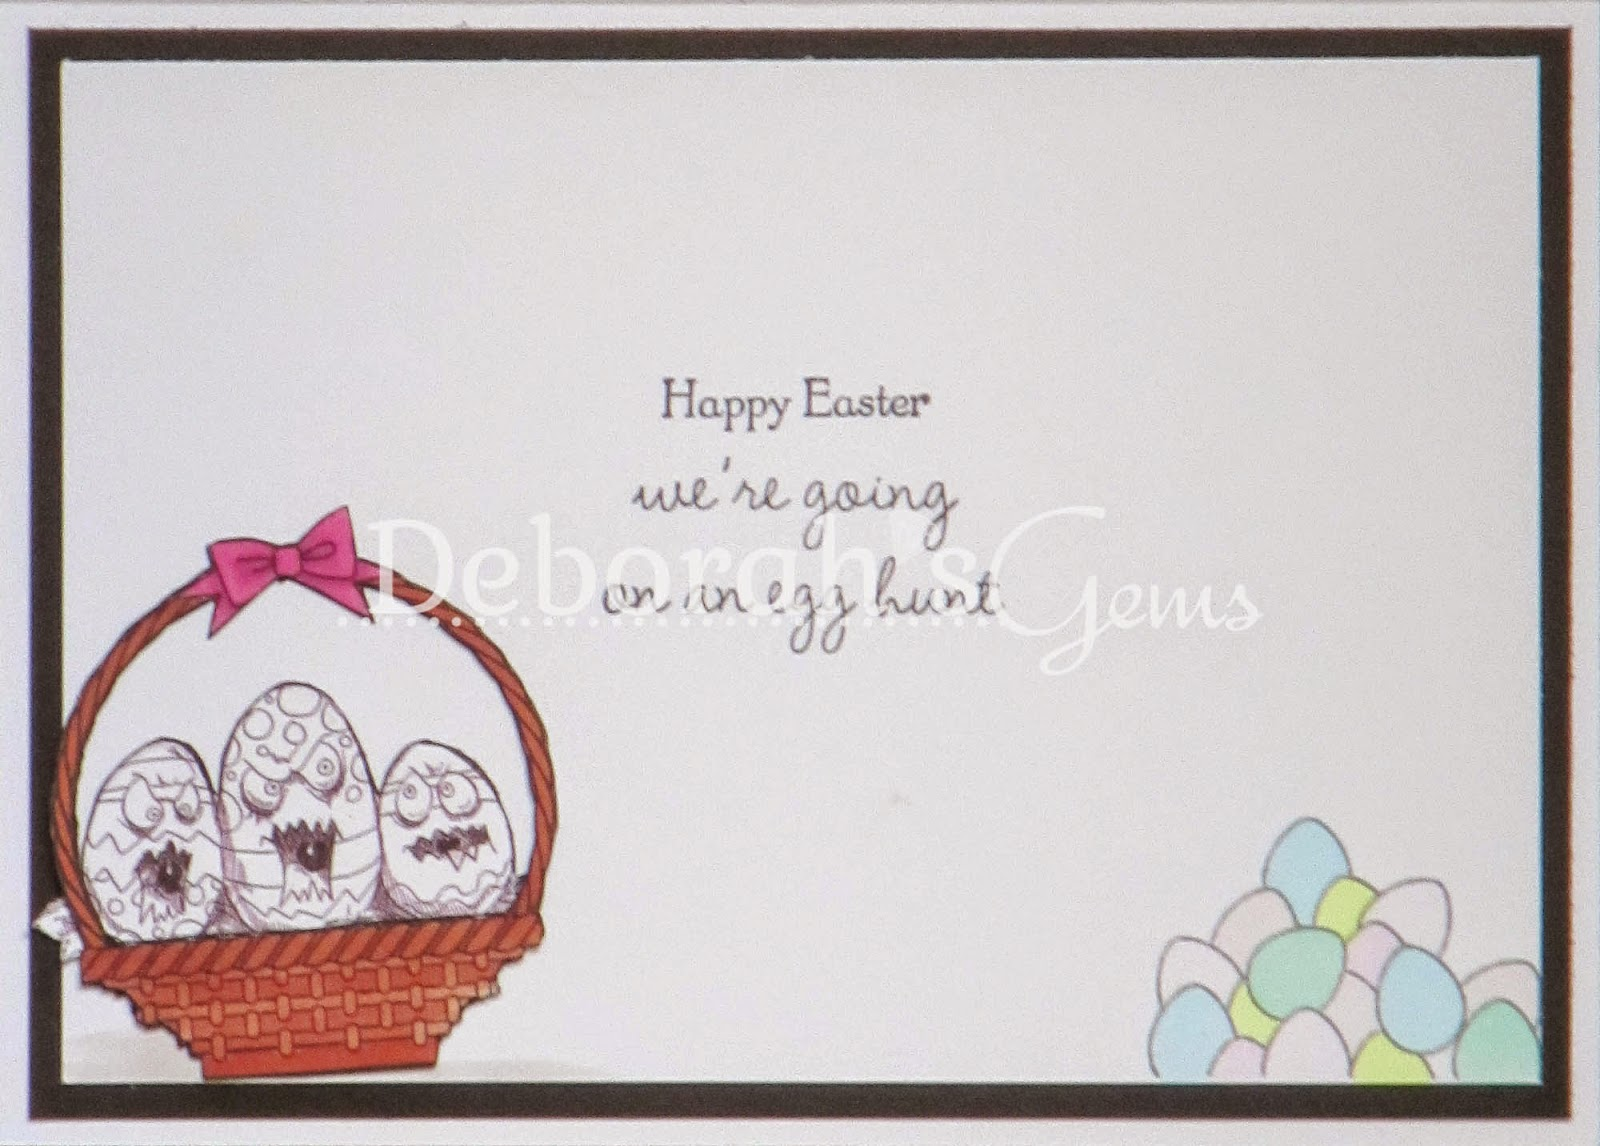 Happy Easter inside - photo by Deborah Frings - Deborah's Gems